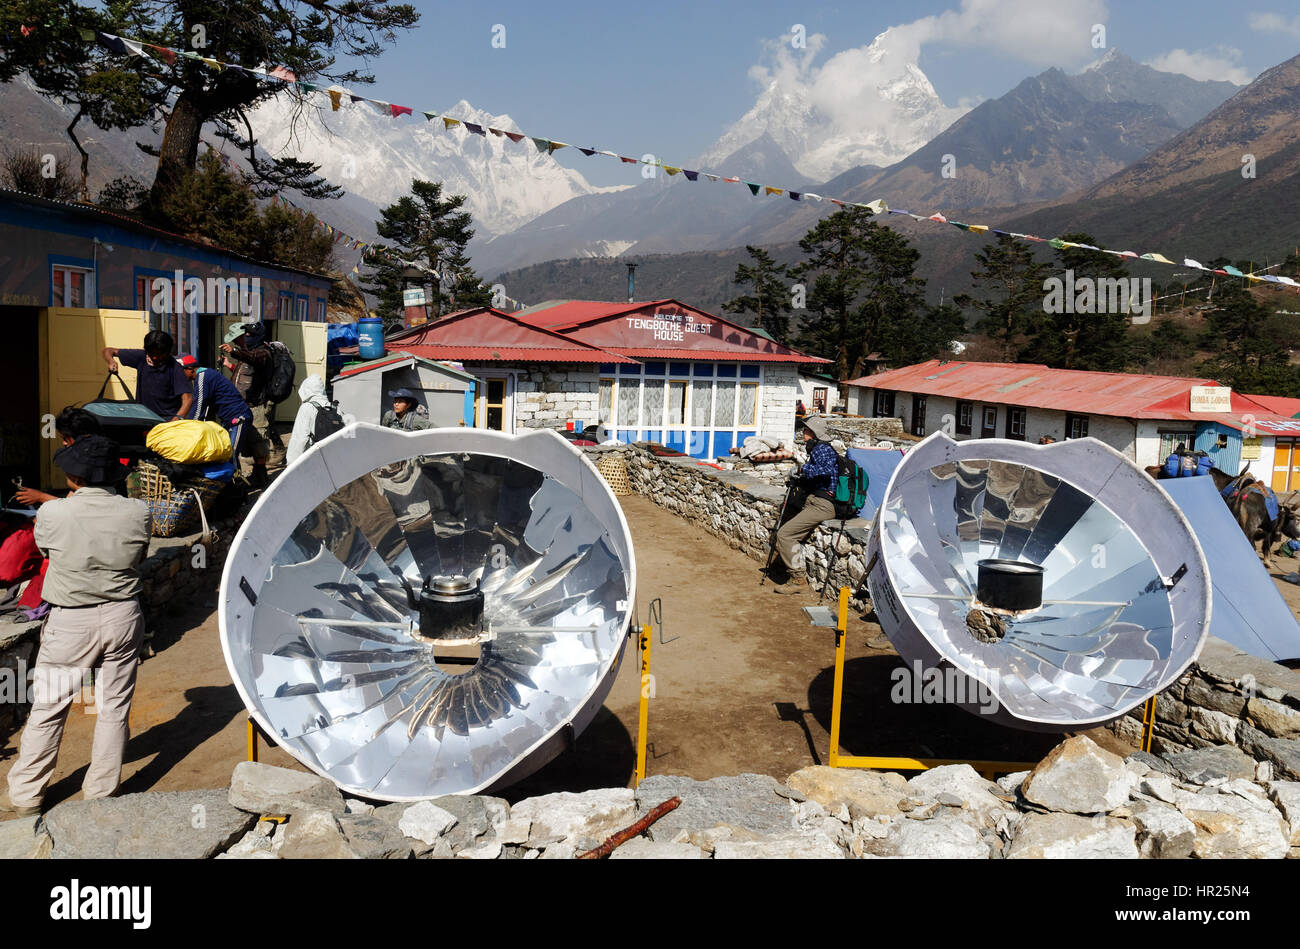 a-kettle-of-water-being-heated-on-a-parabolic-solar-reflector-in-the-HR25N4.jpg